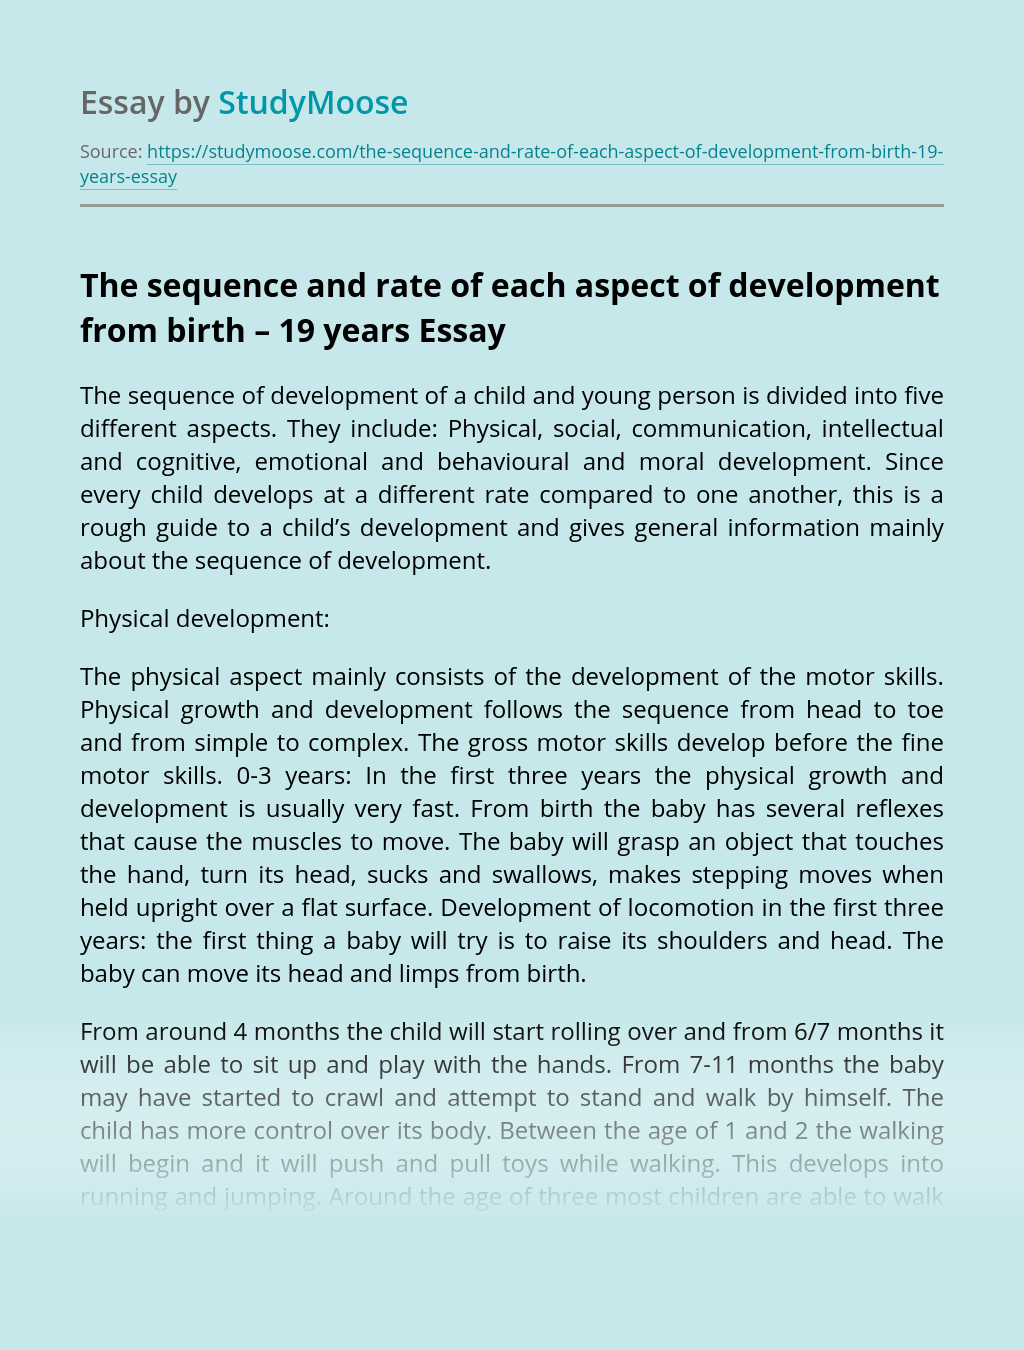 The sequence and rate of each aspect of development from birth – 19 years